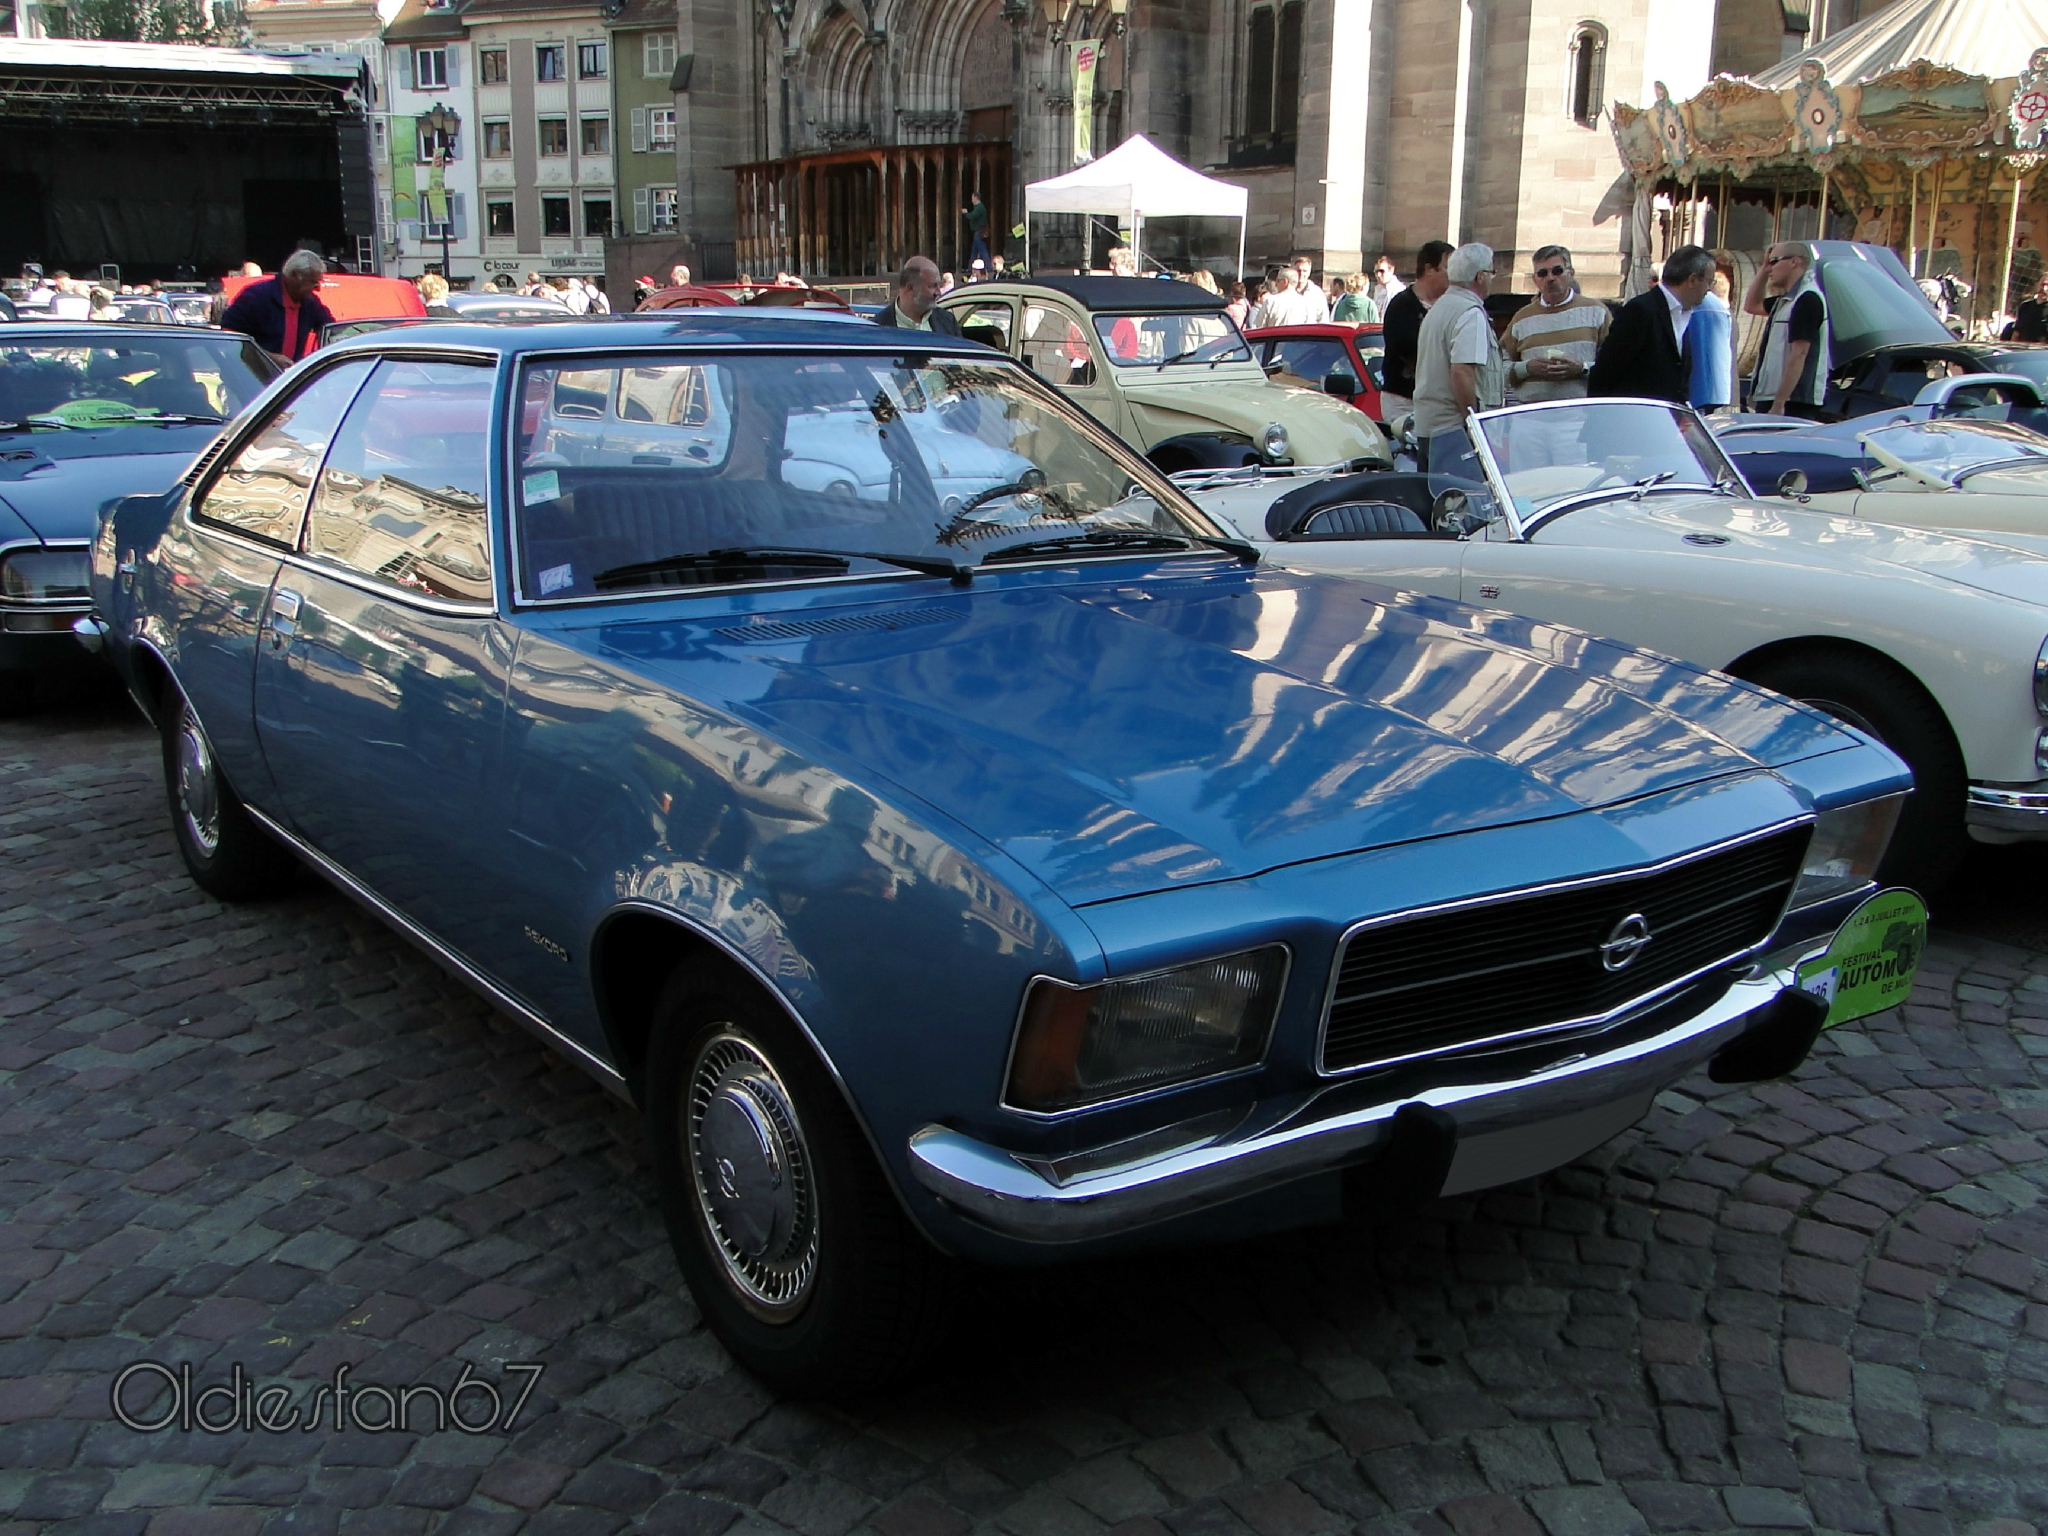 opel rekord d 1900 automatic coupe 1972 1977 oldiesfan67. Black Bedroom Furniture Sets. Home Design Ideas